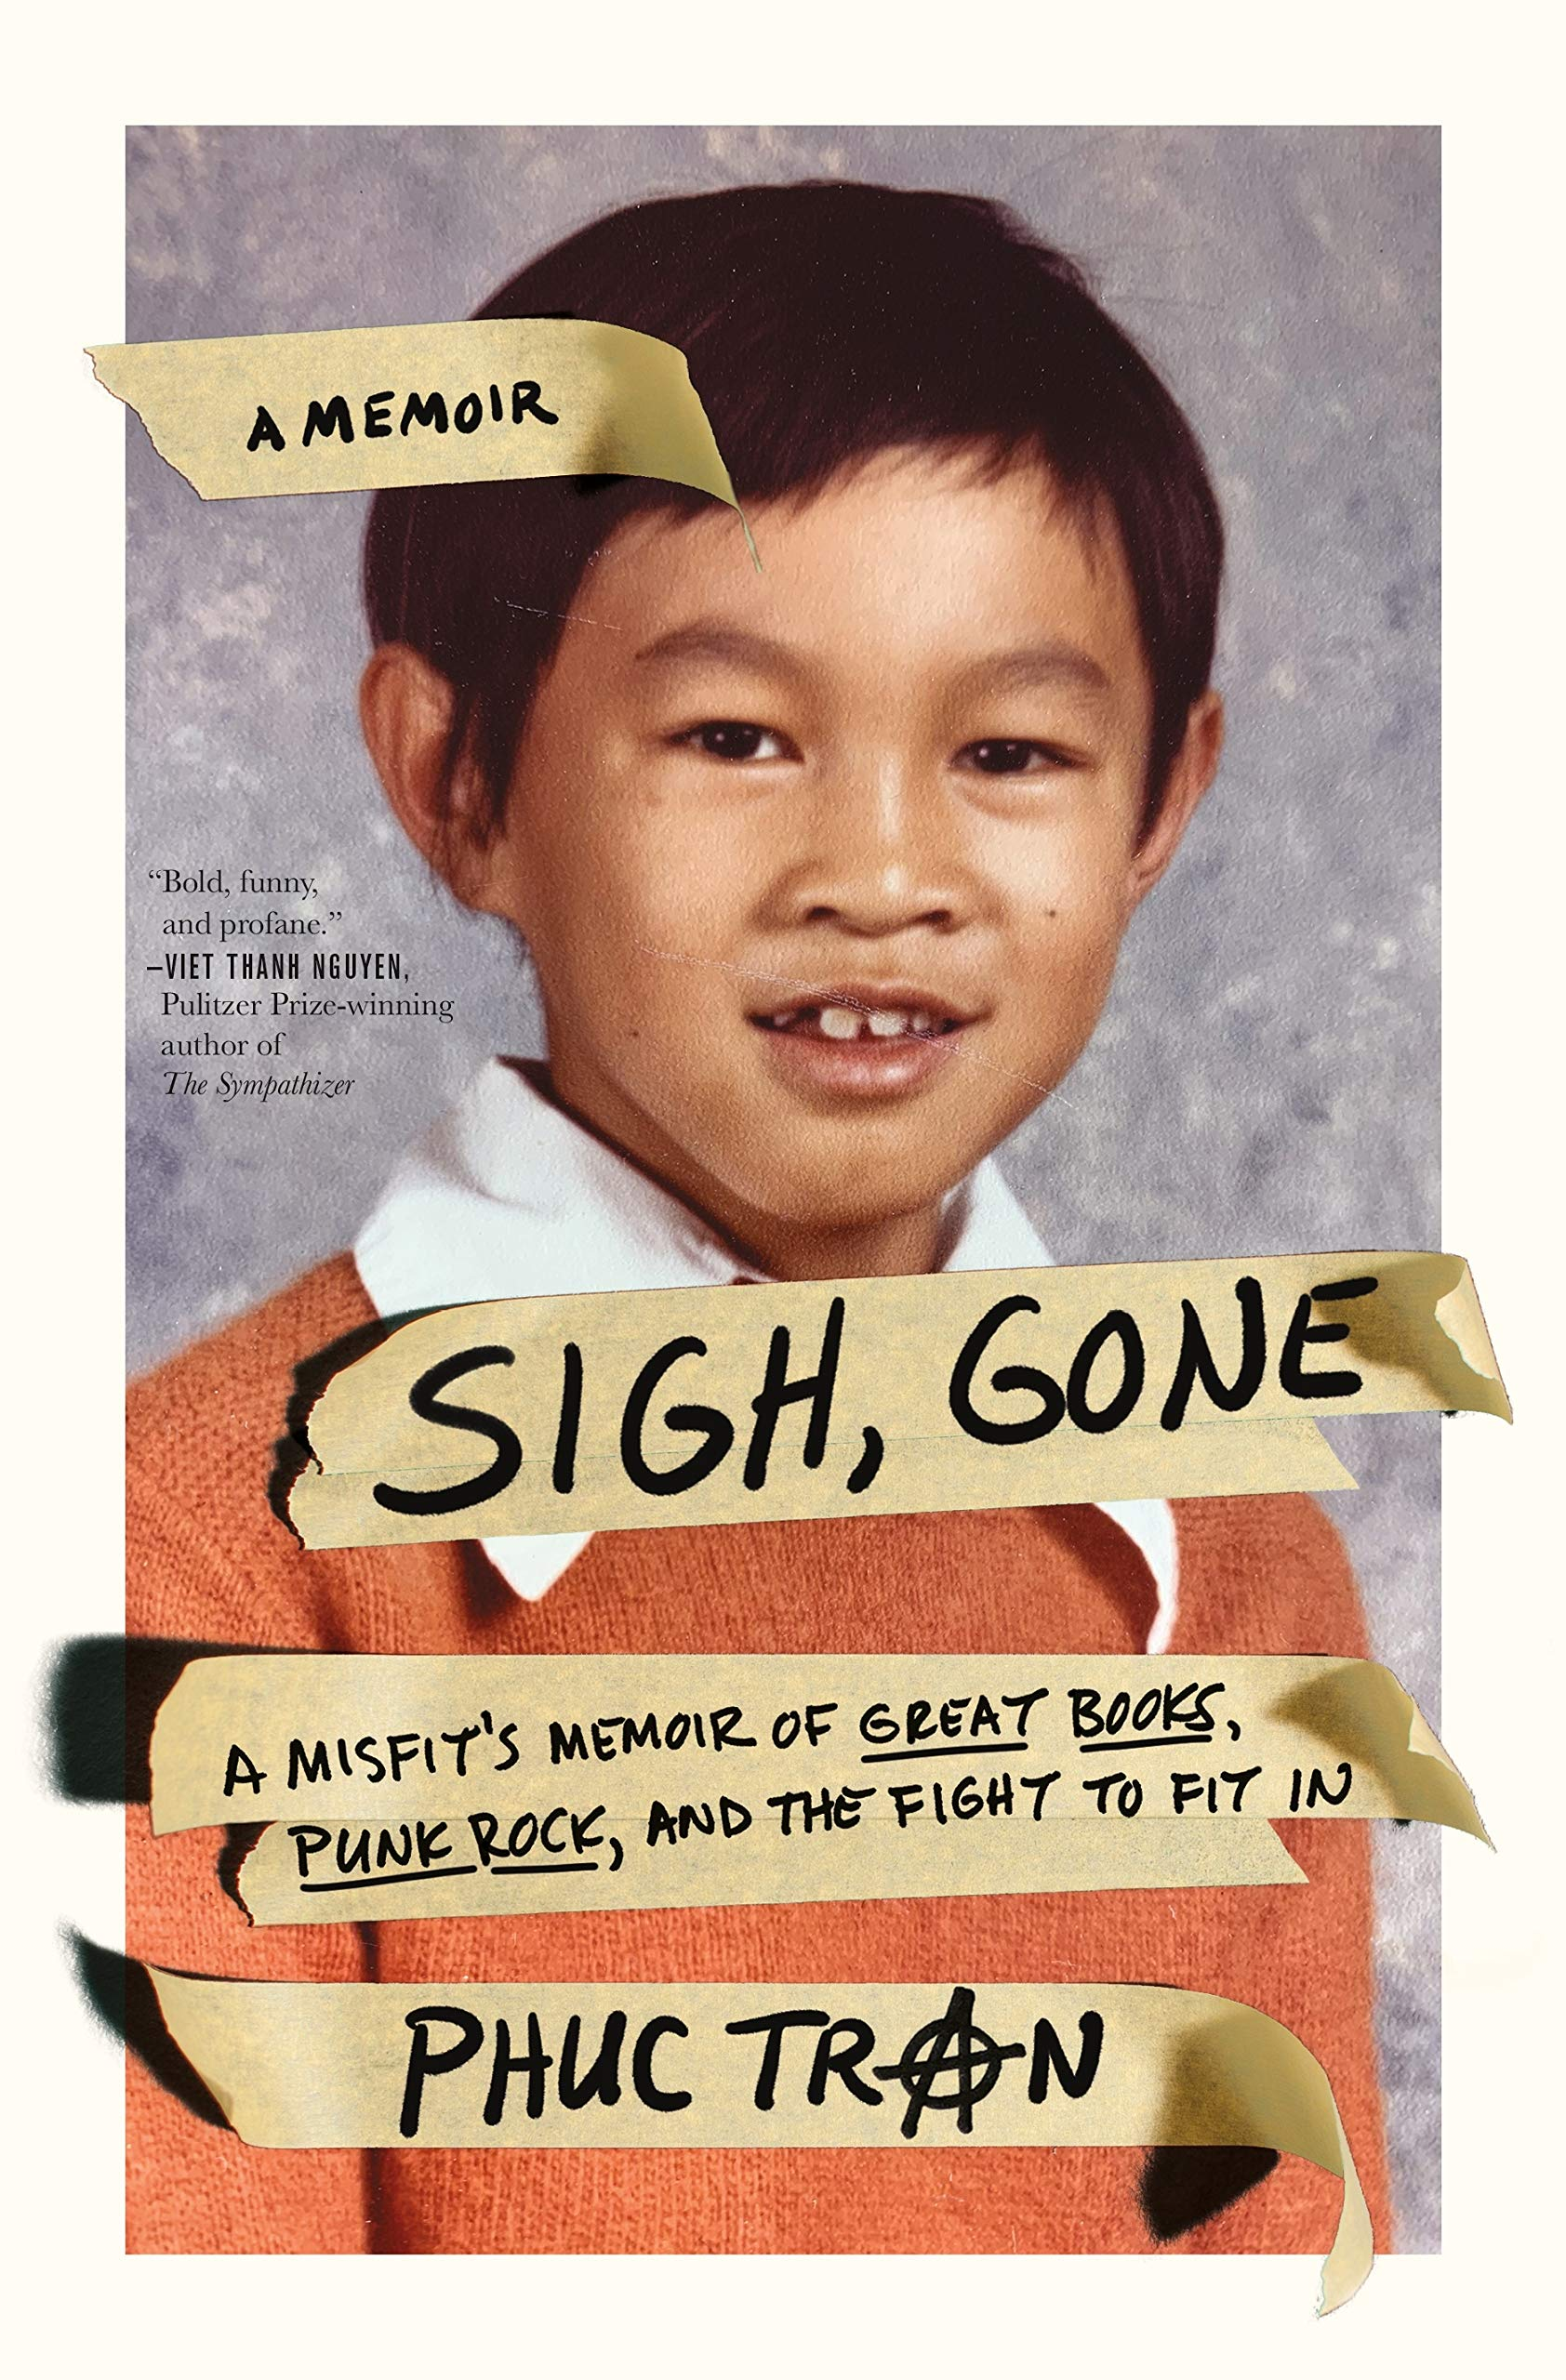 Sigh, Gone: A Misfit's Memoir of Great Books, Punk Rock, and the Fight to  Fit In: Tran, Phuc: 9781250194718: Books - Amazon.ca